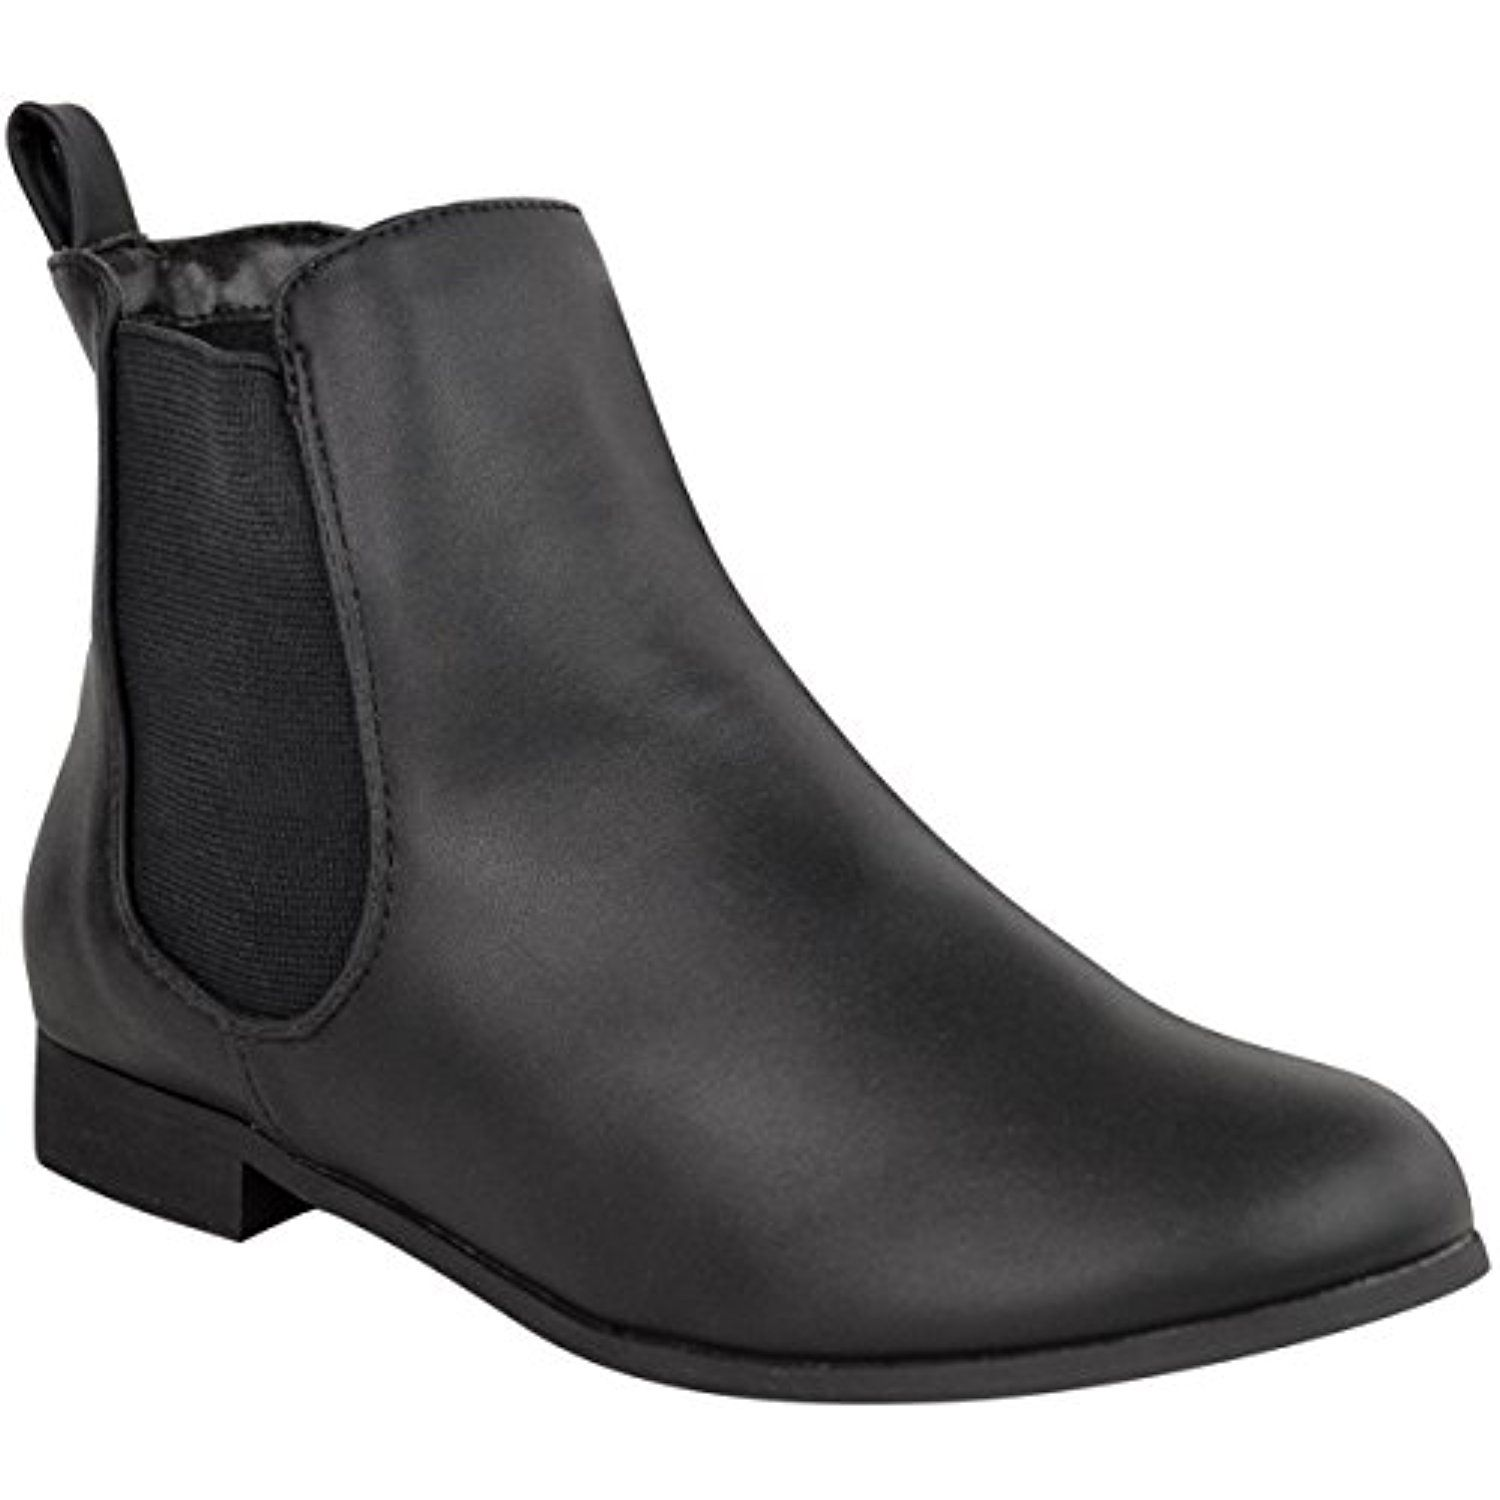 Womens Flat Low Heel Chelsea Ankle Boot Elastic Gusset Pull On Riding Heel  Boots  Be